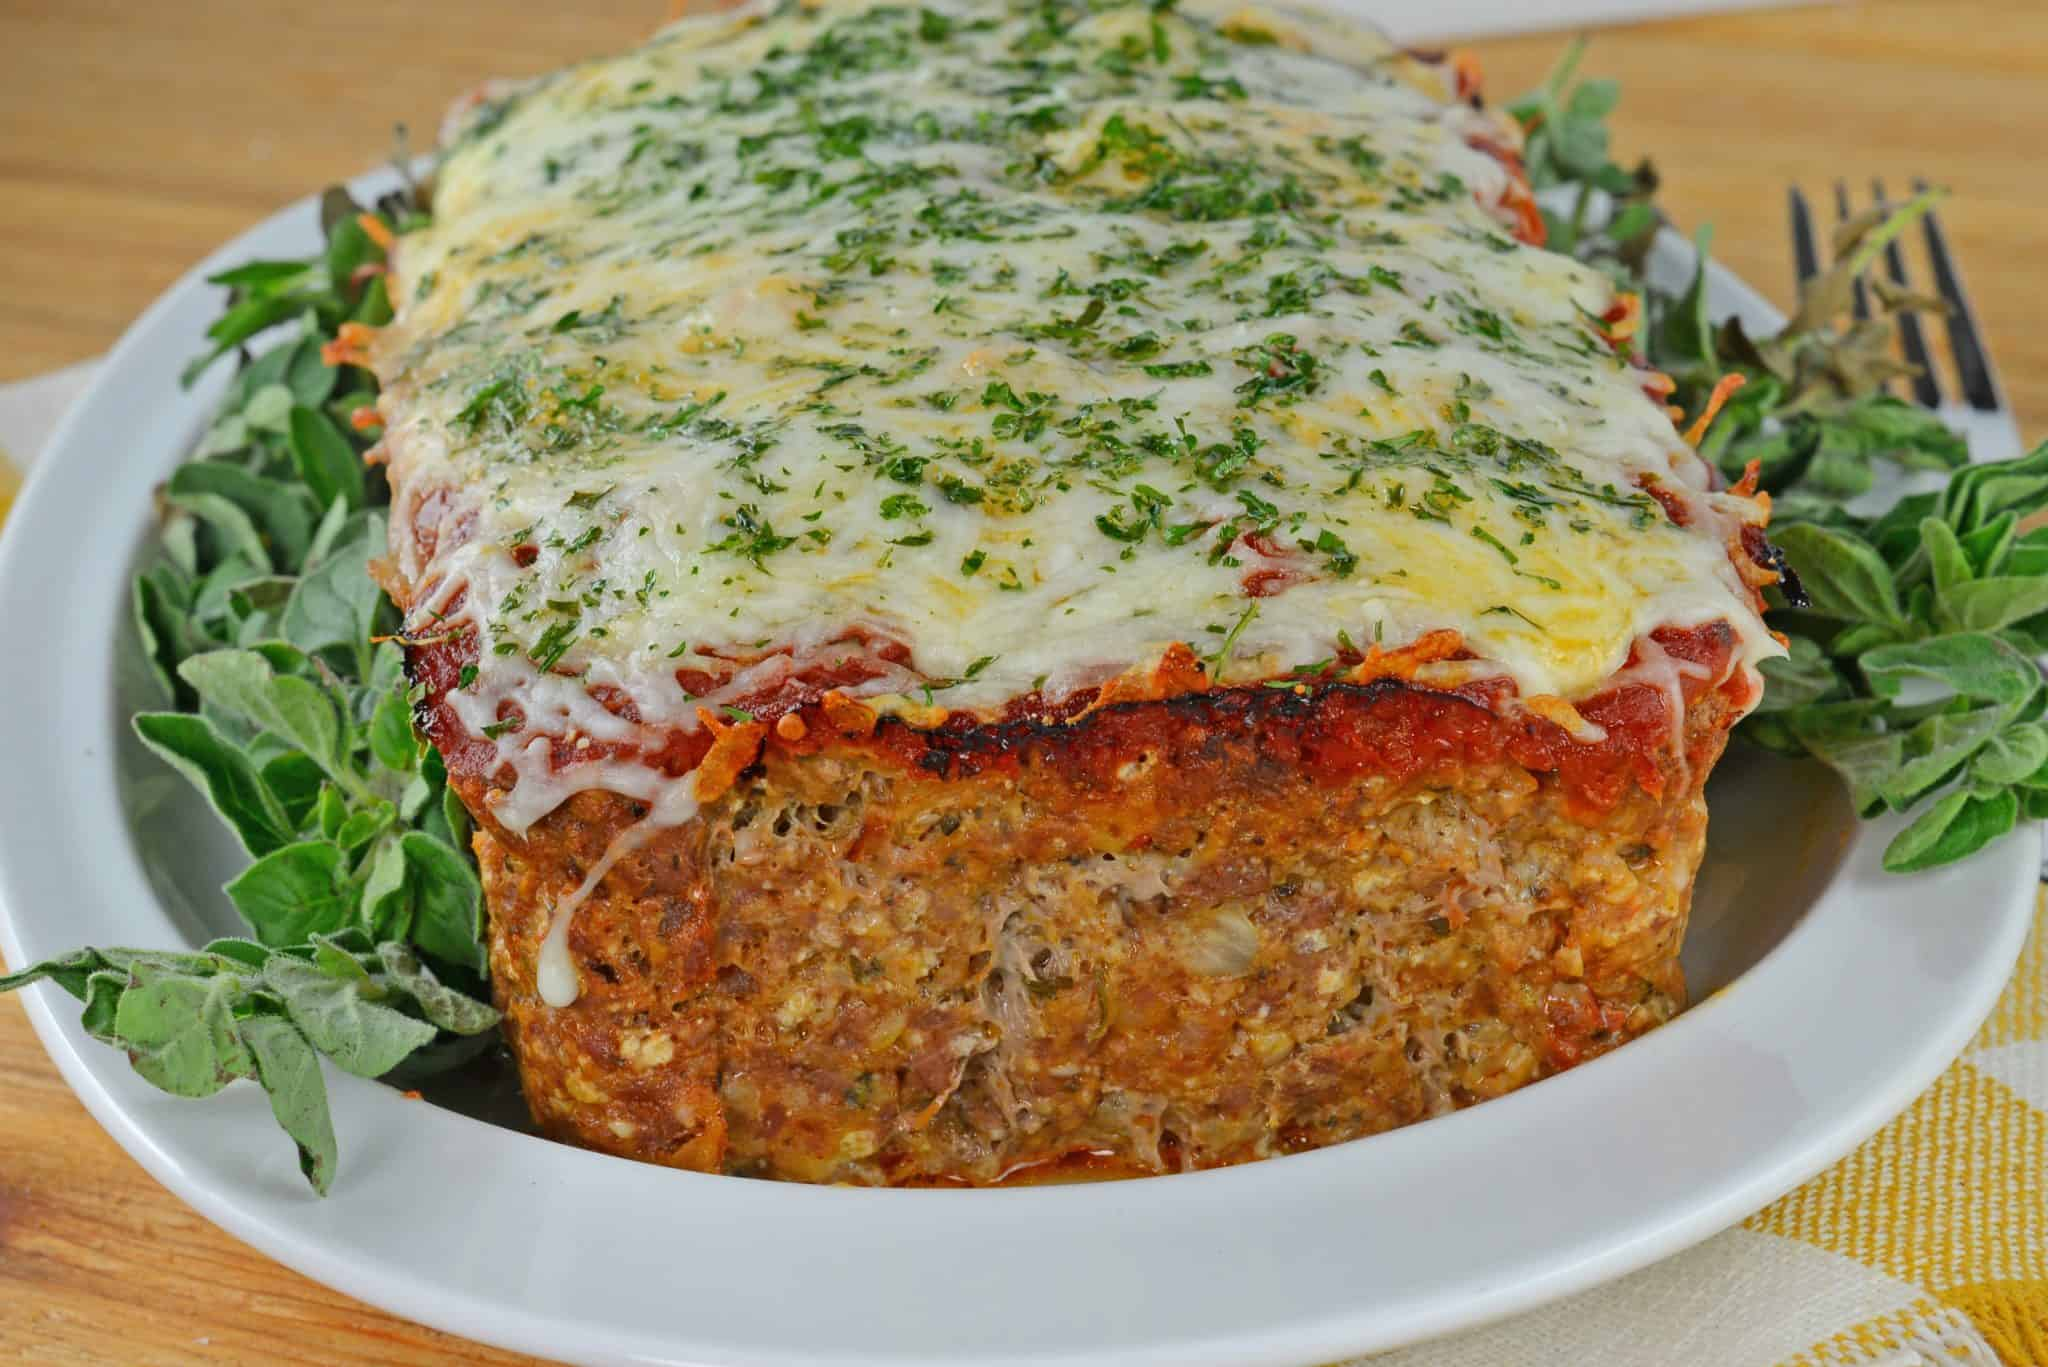 Italian meatloaf topped with cheese